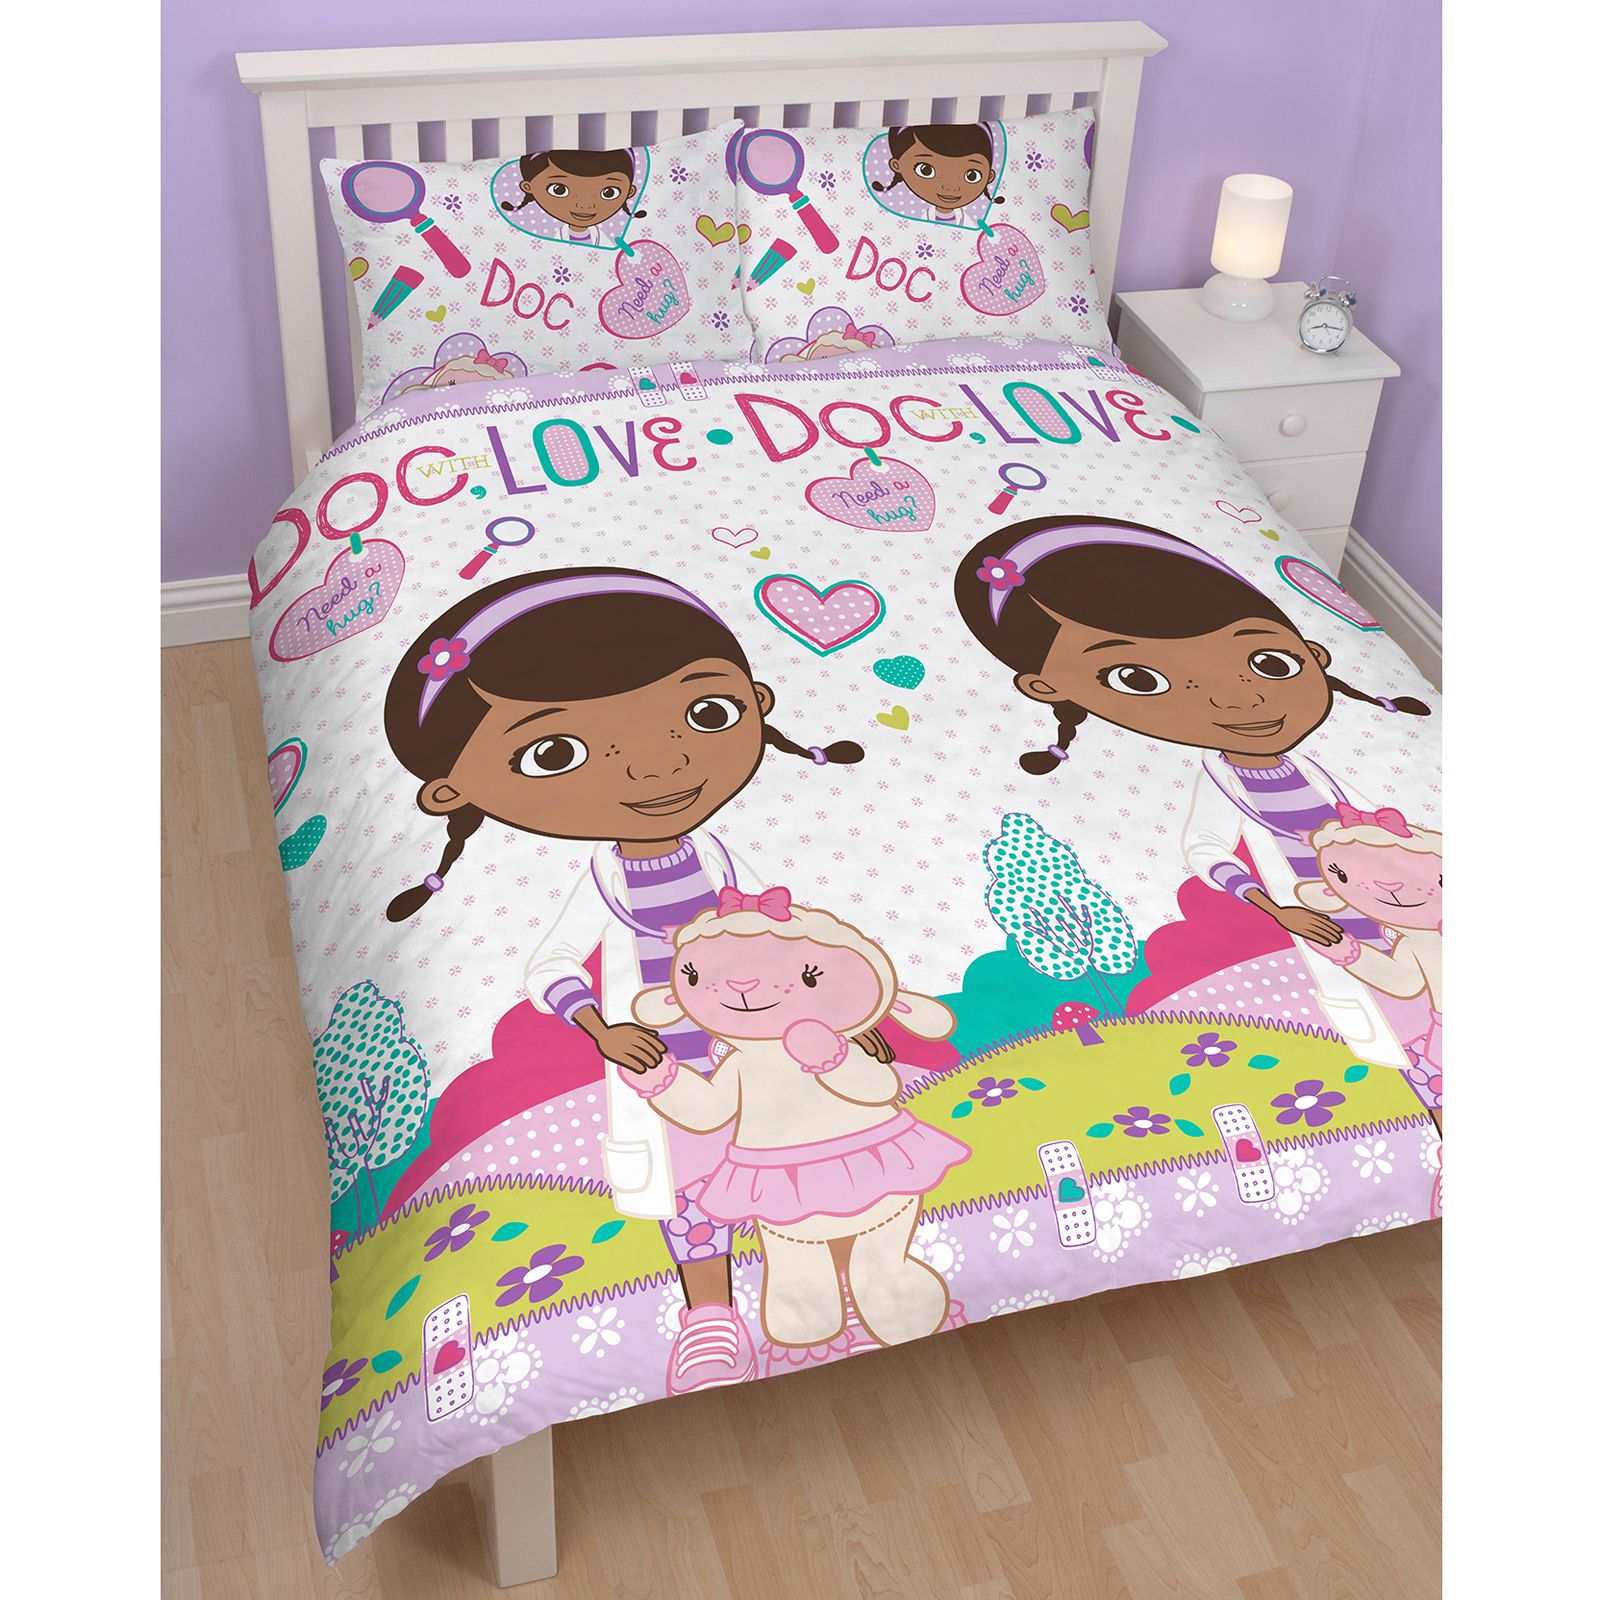 doc mcstuffins chair smyths covers xmas bedroom bedding duvet in single and